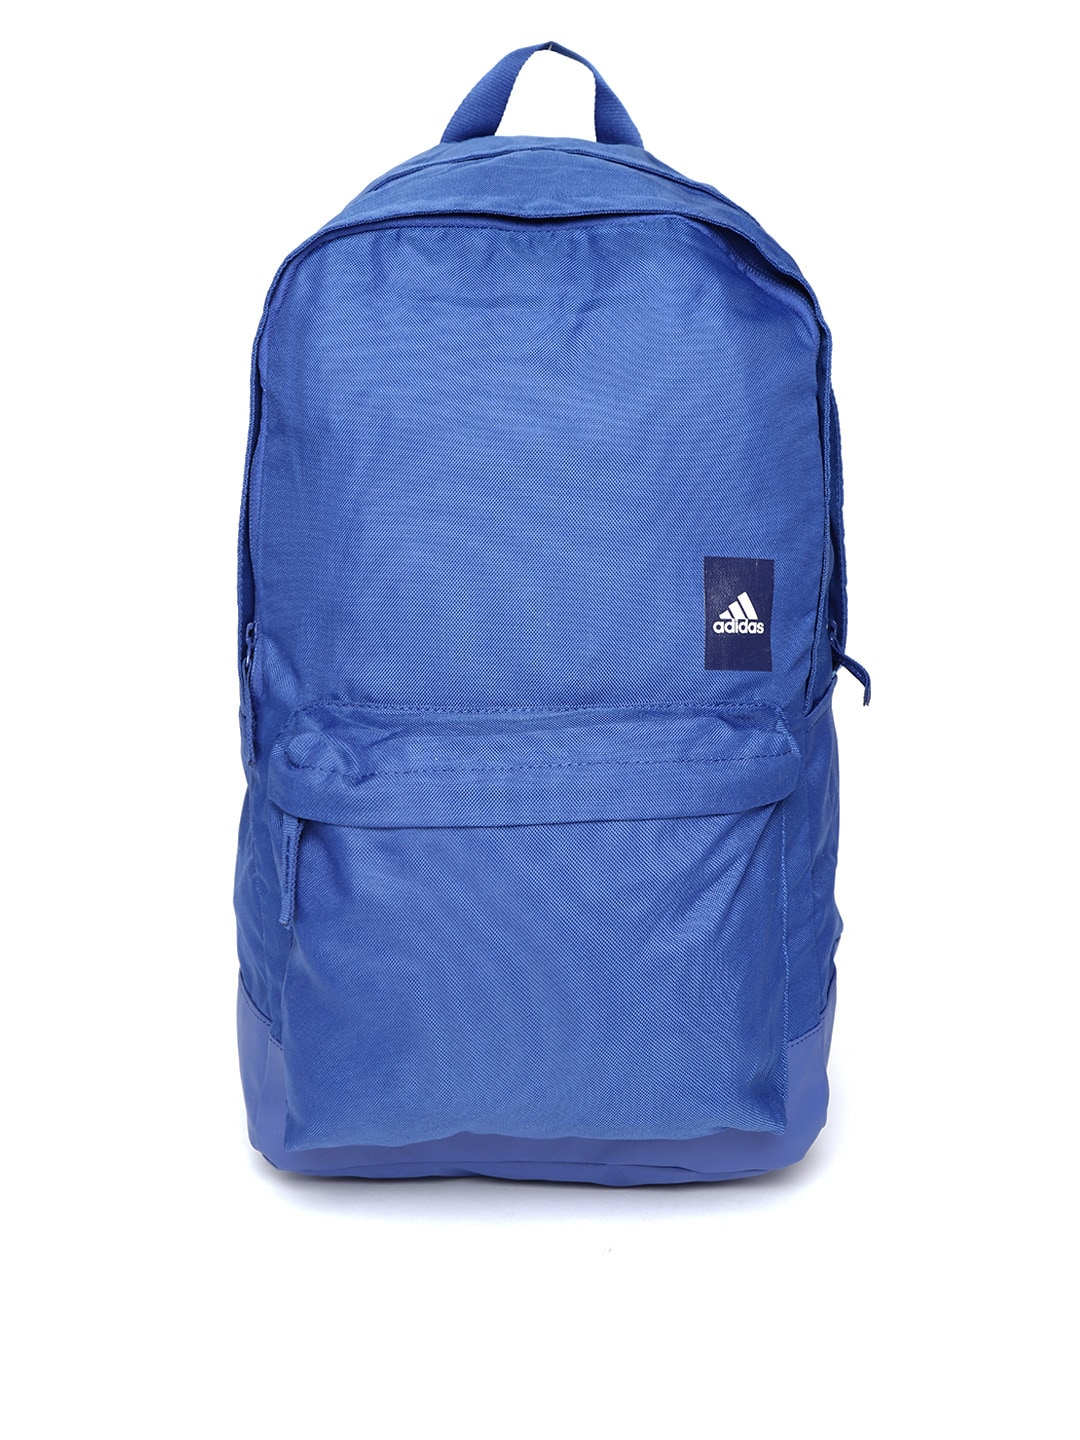 797d41b0cc Adidas Bags Backpacks - Buy Adidas Bags Backpacks online in India